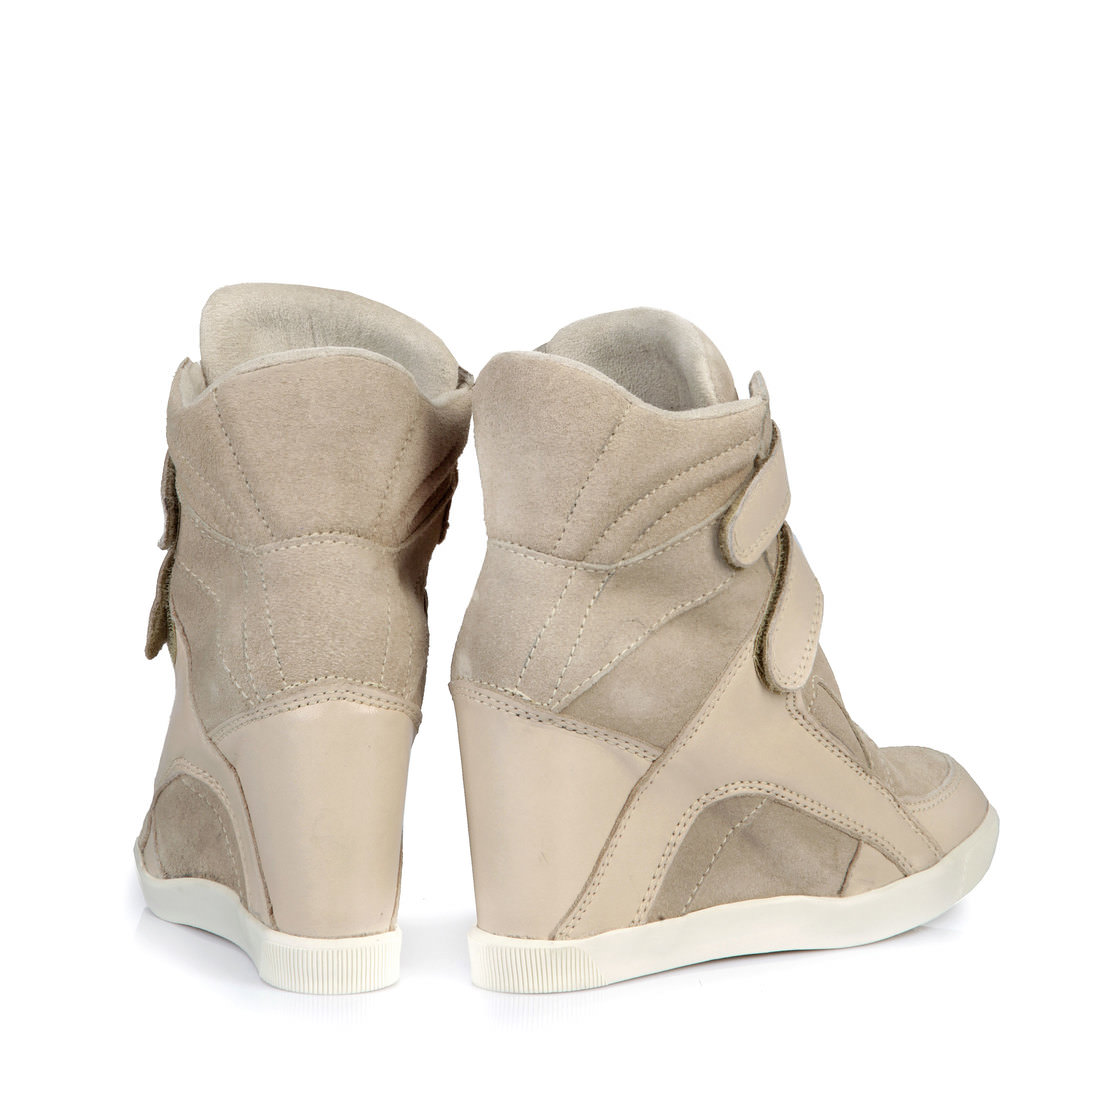 quality design fa794 a8846 Buffalo wedge heeled trainers in beige buy online in BUFFALO ...